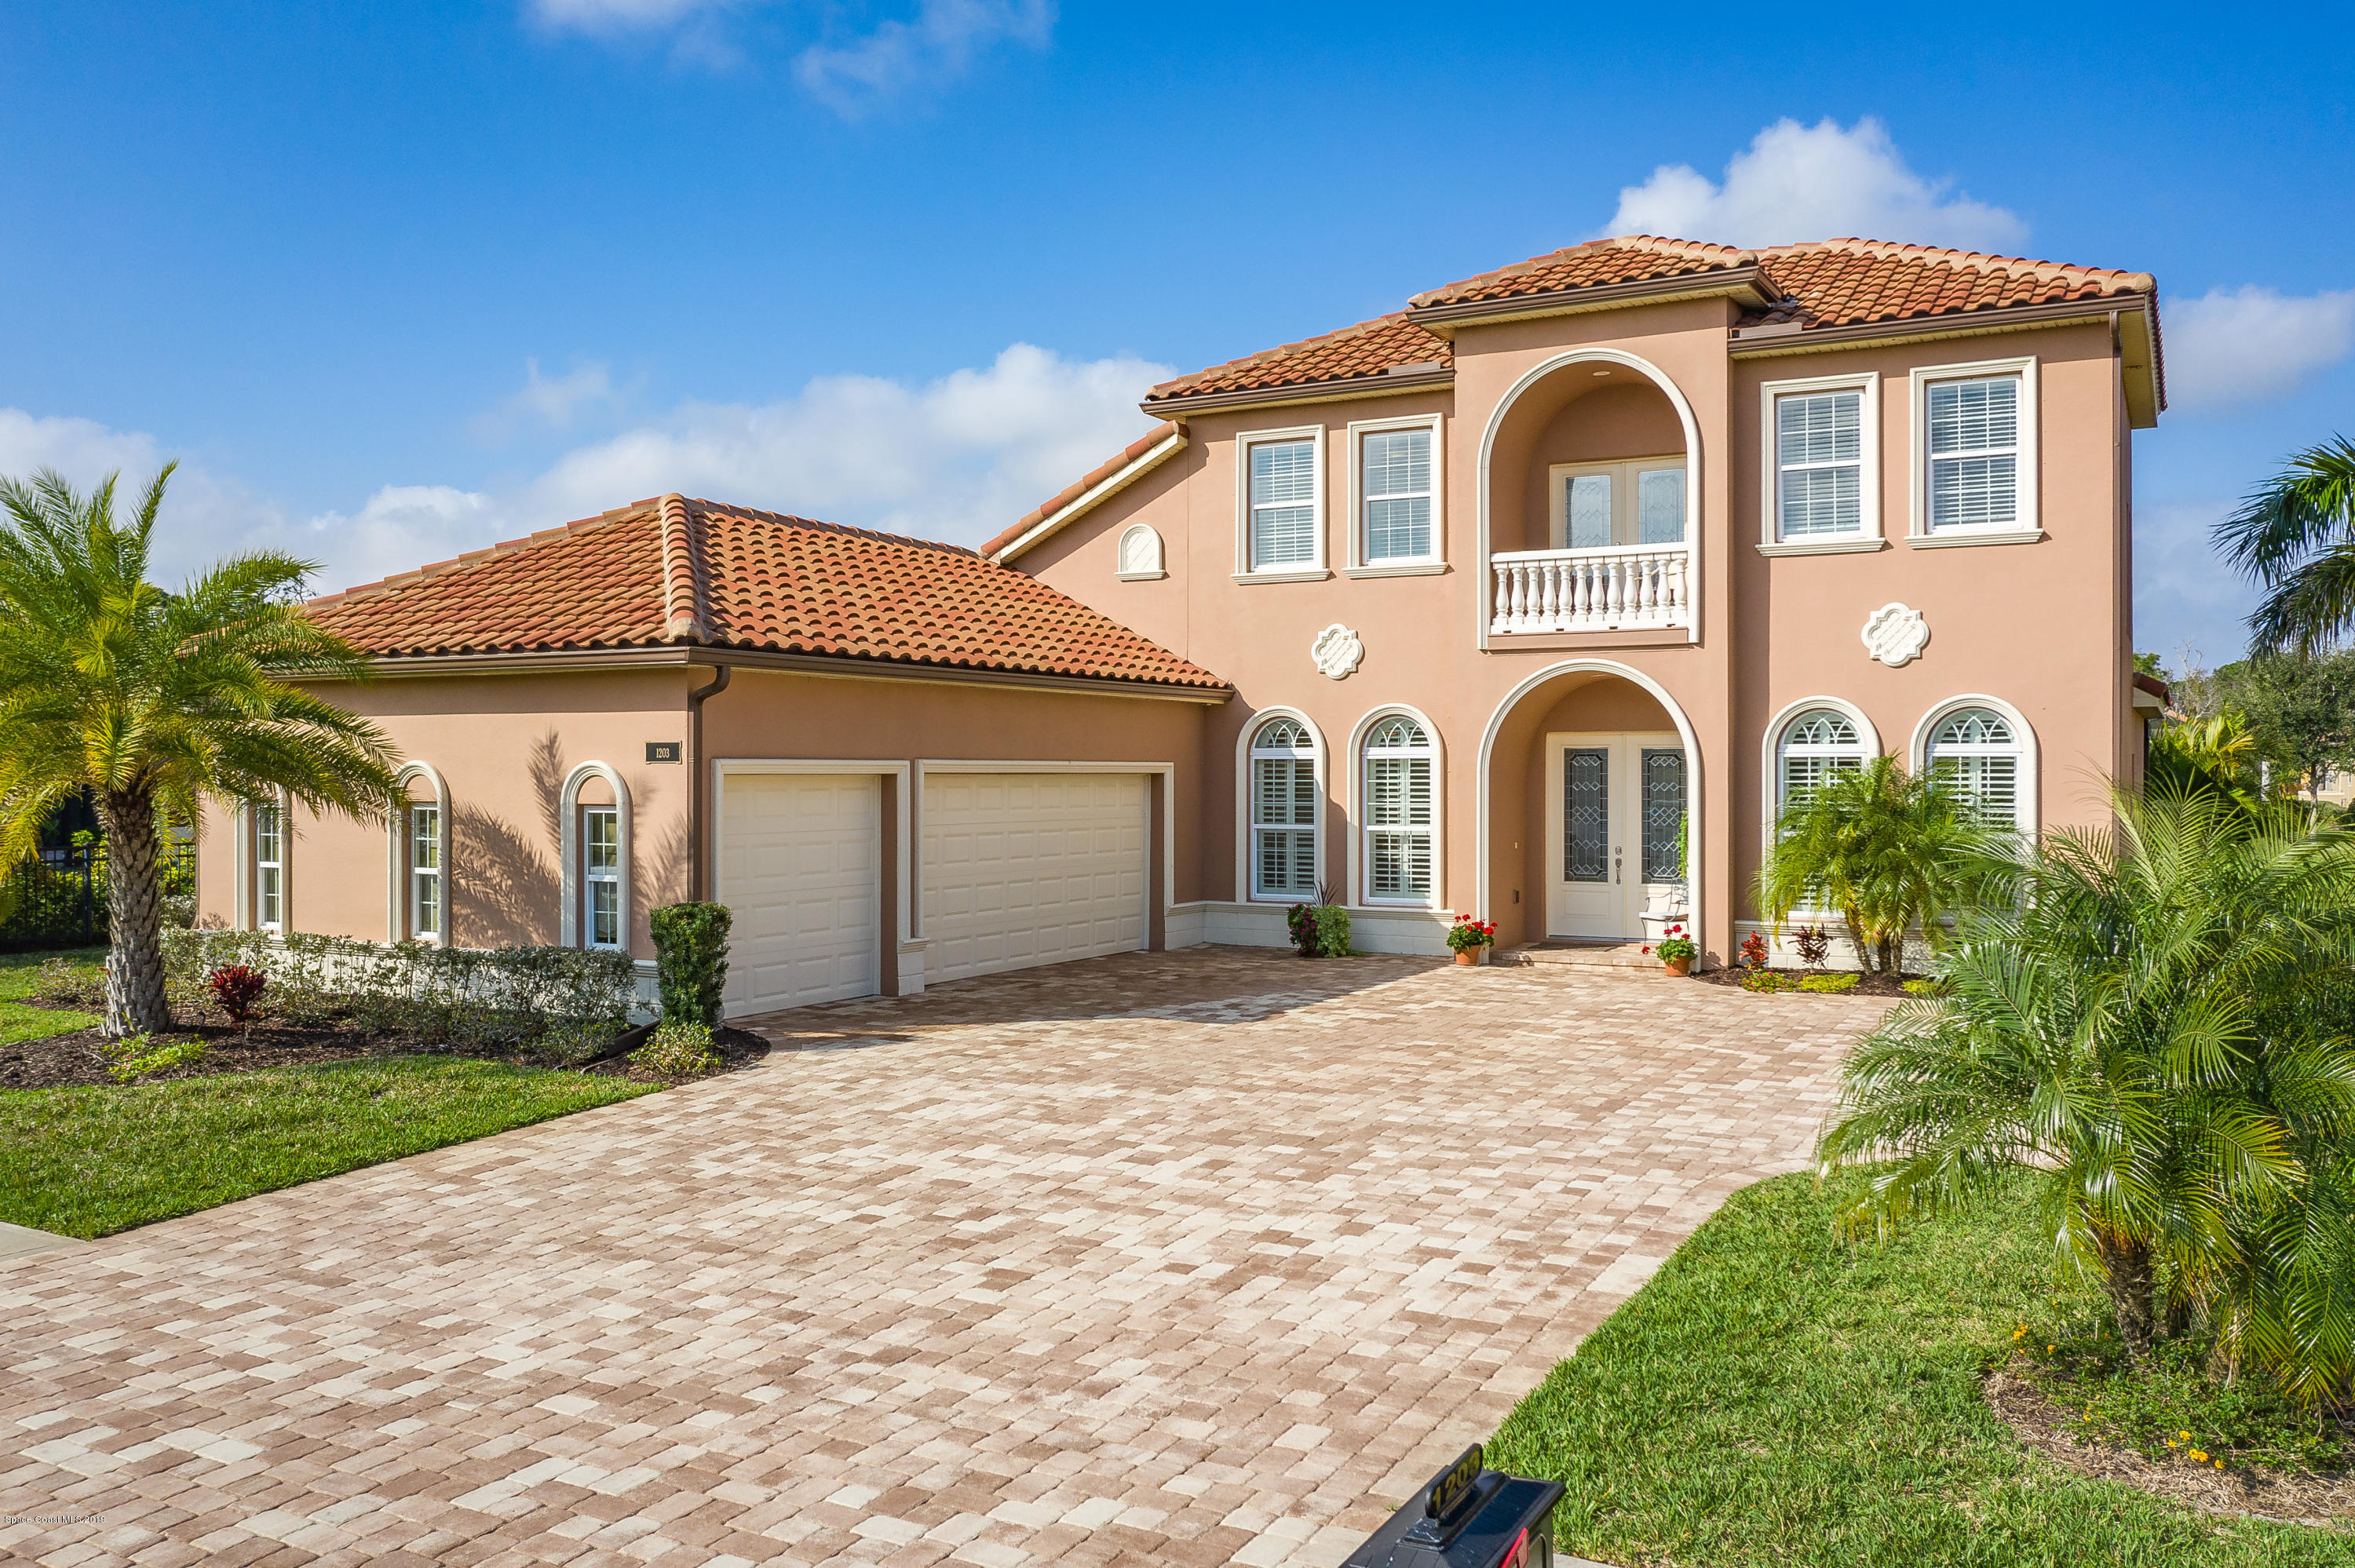 Single Family Home for Sale at 1203 Tralee Bay 1203 Tralee Bay Melbourne, Florida 32940 United States